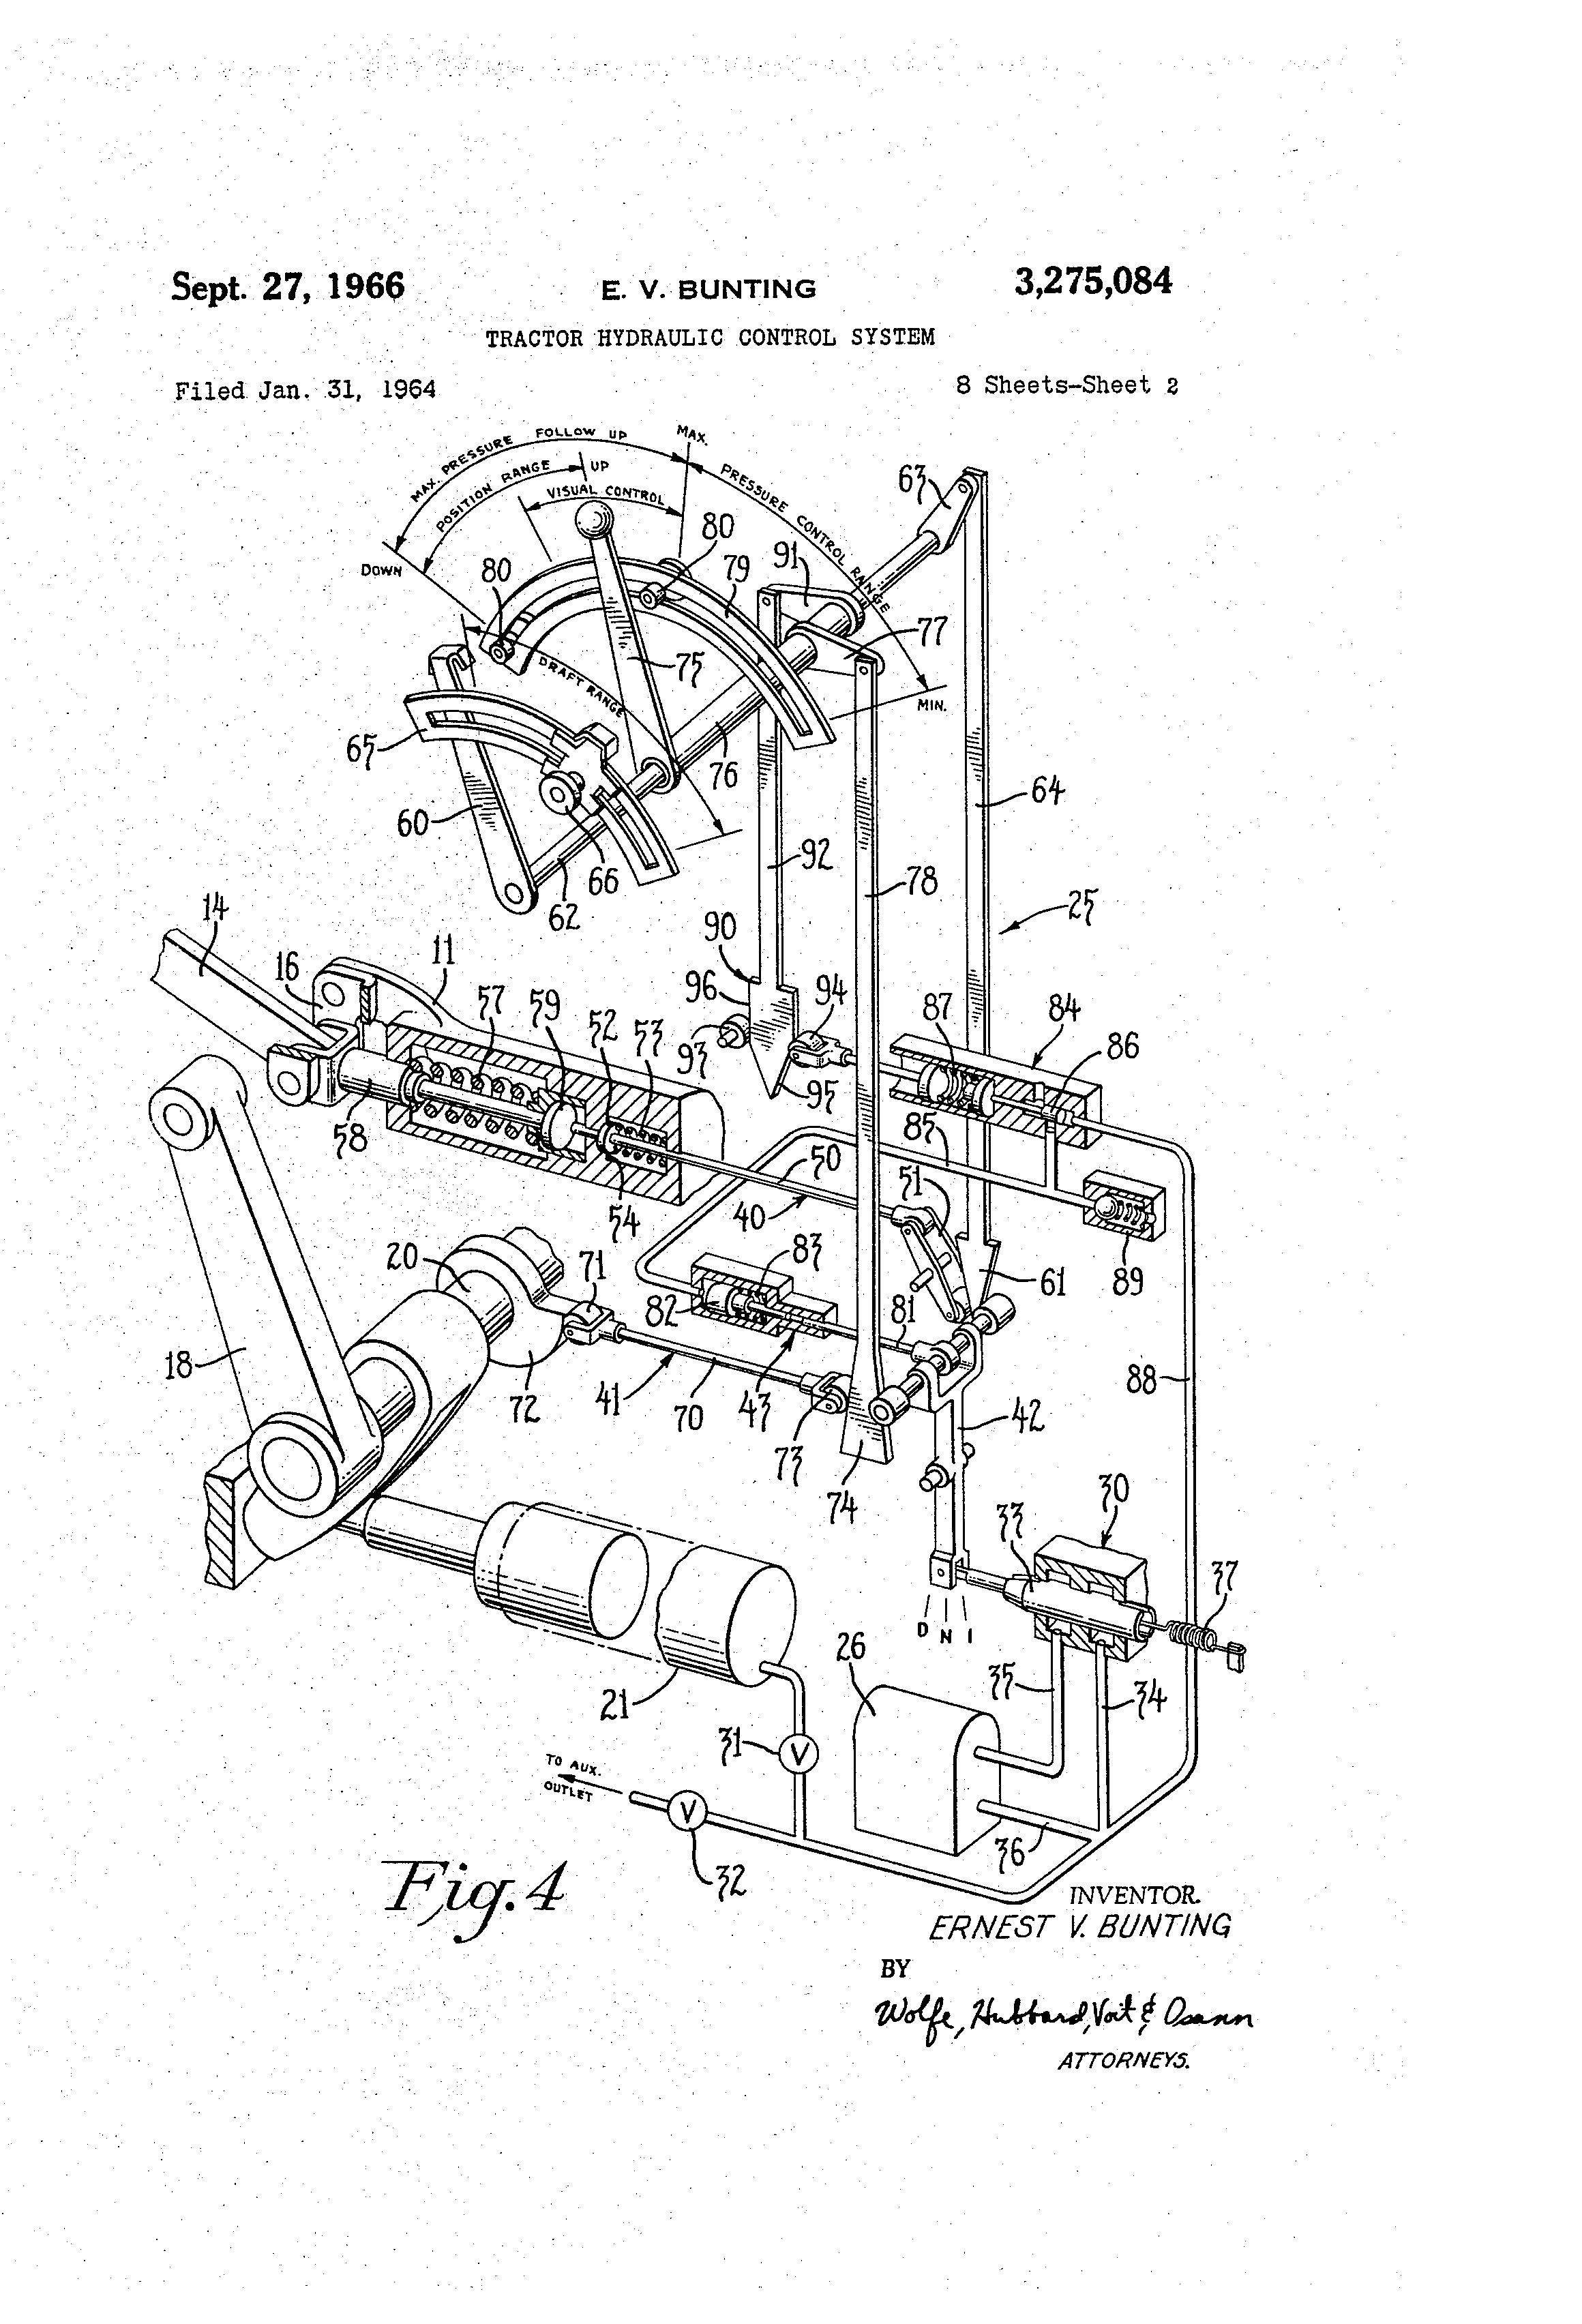 Massey Ferguson Mf 1100 1130 Tractor Service Manual 153617685 moreover Cylinder head detail further 1250 Ferguson Tractor Wiring Diagram additionally Lucas Cav Injector Pump Breakdown Diagram in addition Massey Ferguson Tractor 2210 2225 2235 Series Workshop Manual. on mf tractor wiring diagram